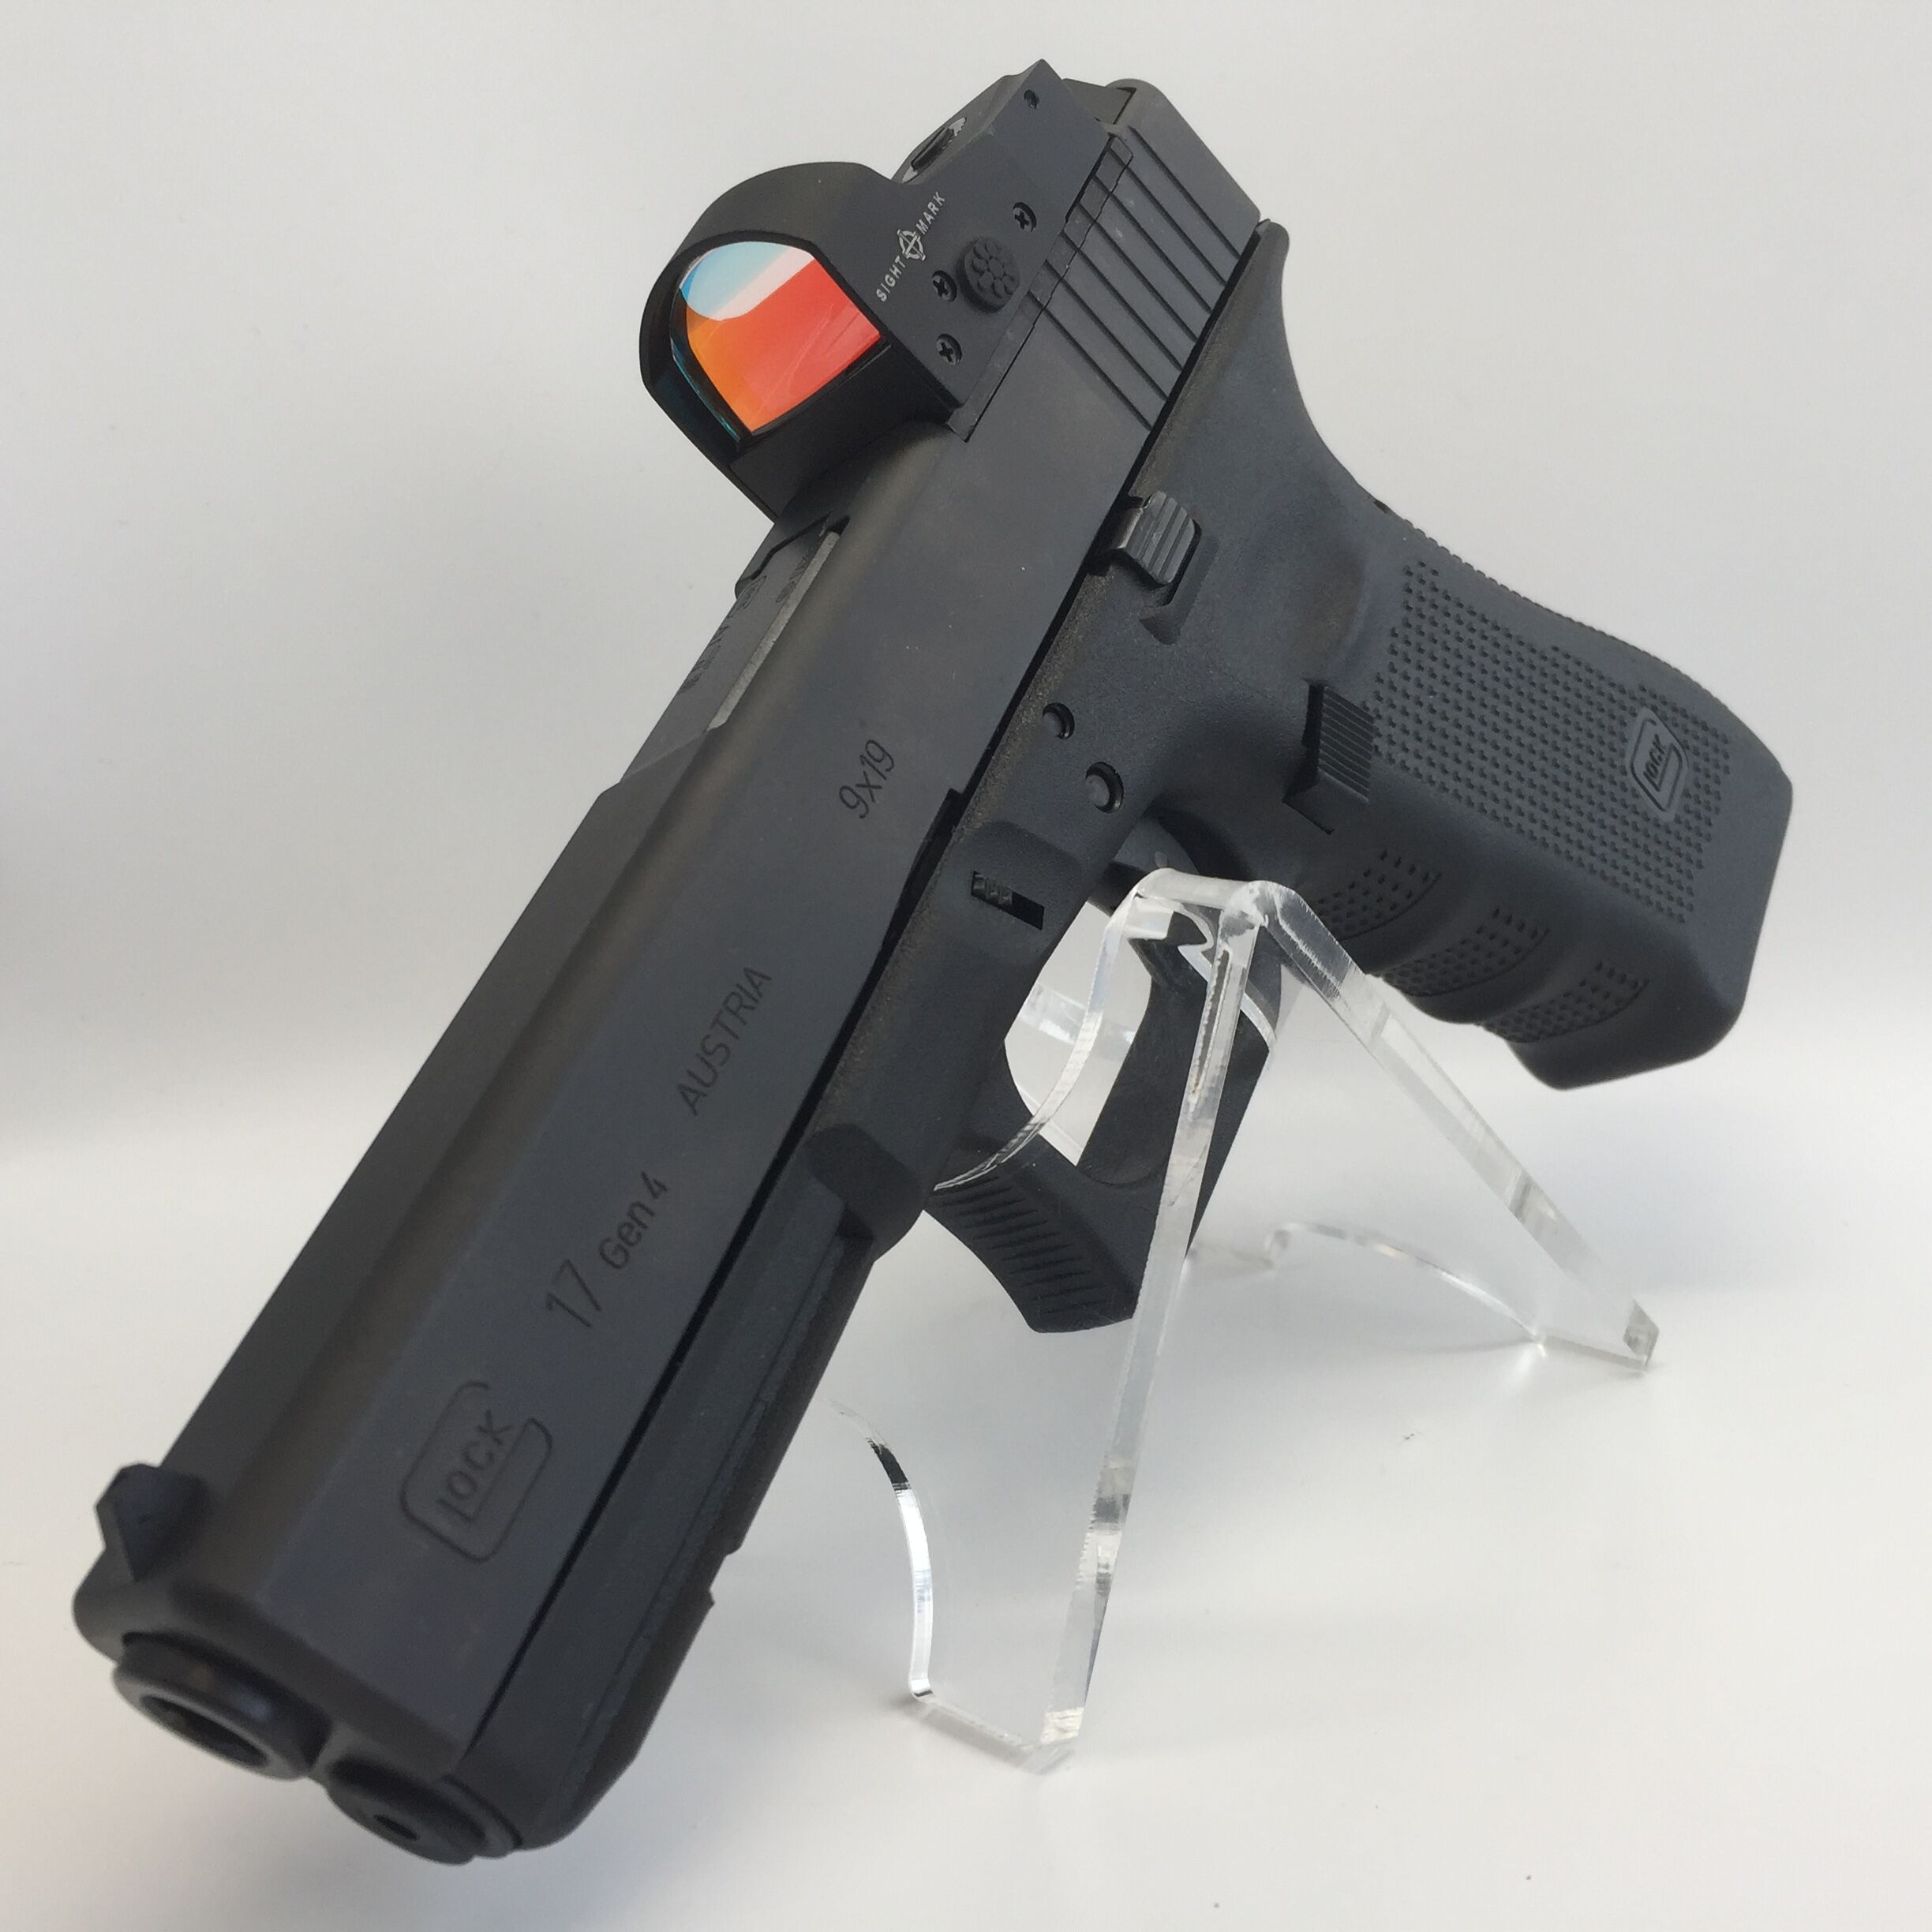 Glock Glock 17 Gen4 MOS inkl. Sightmark Mini shot pro spec